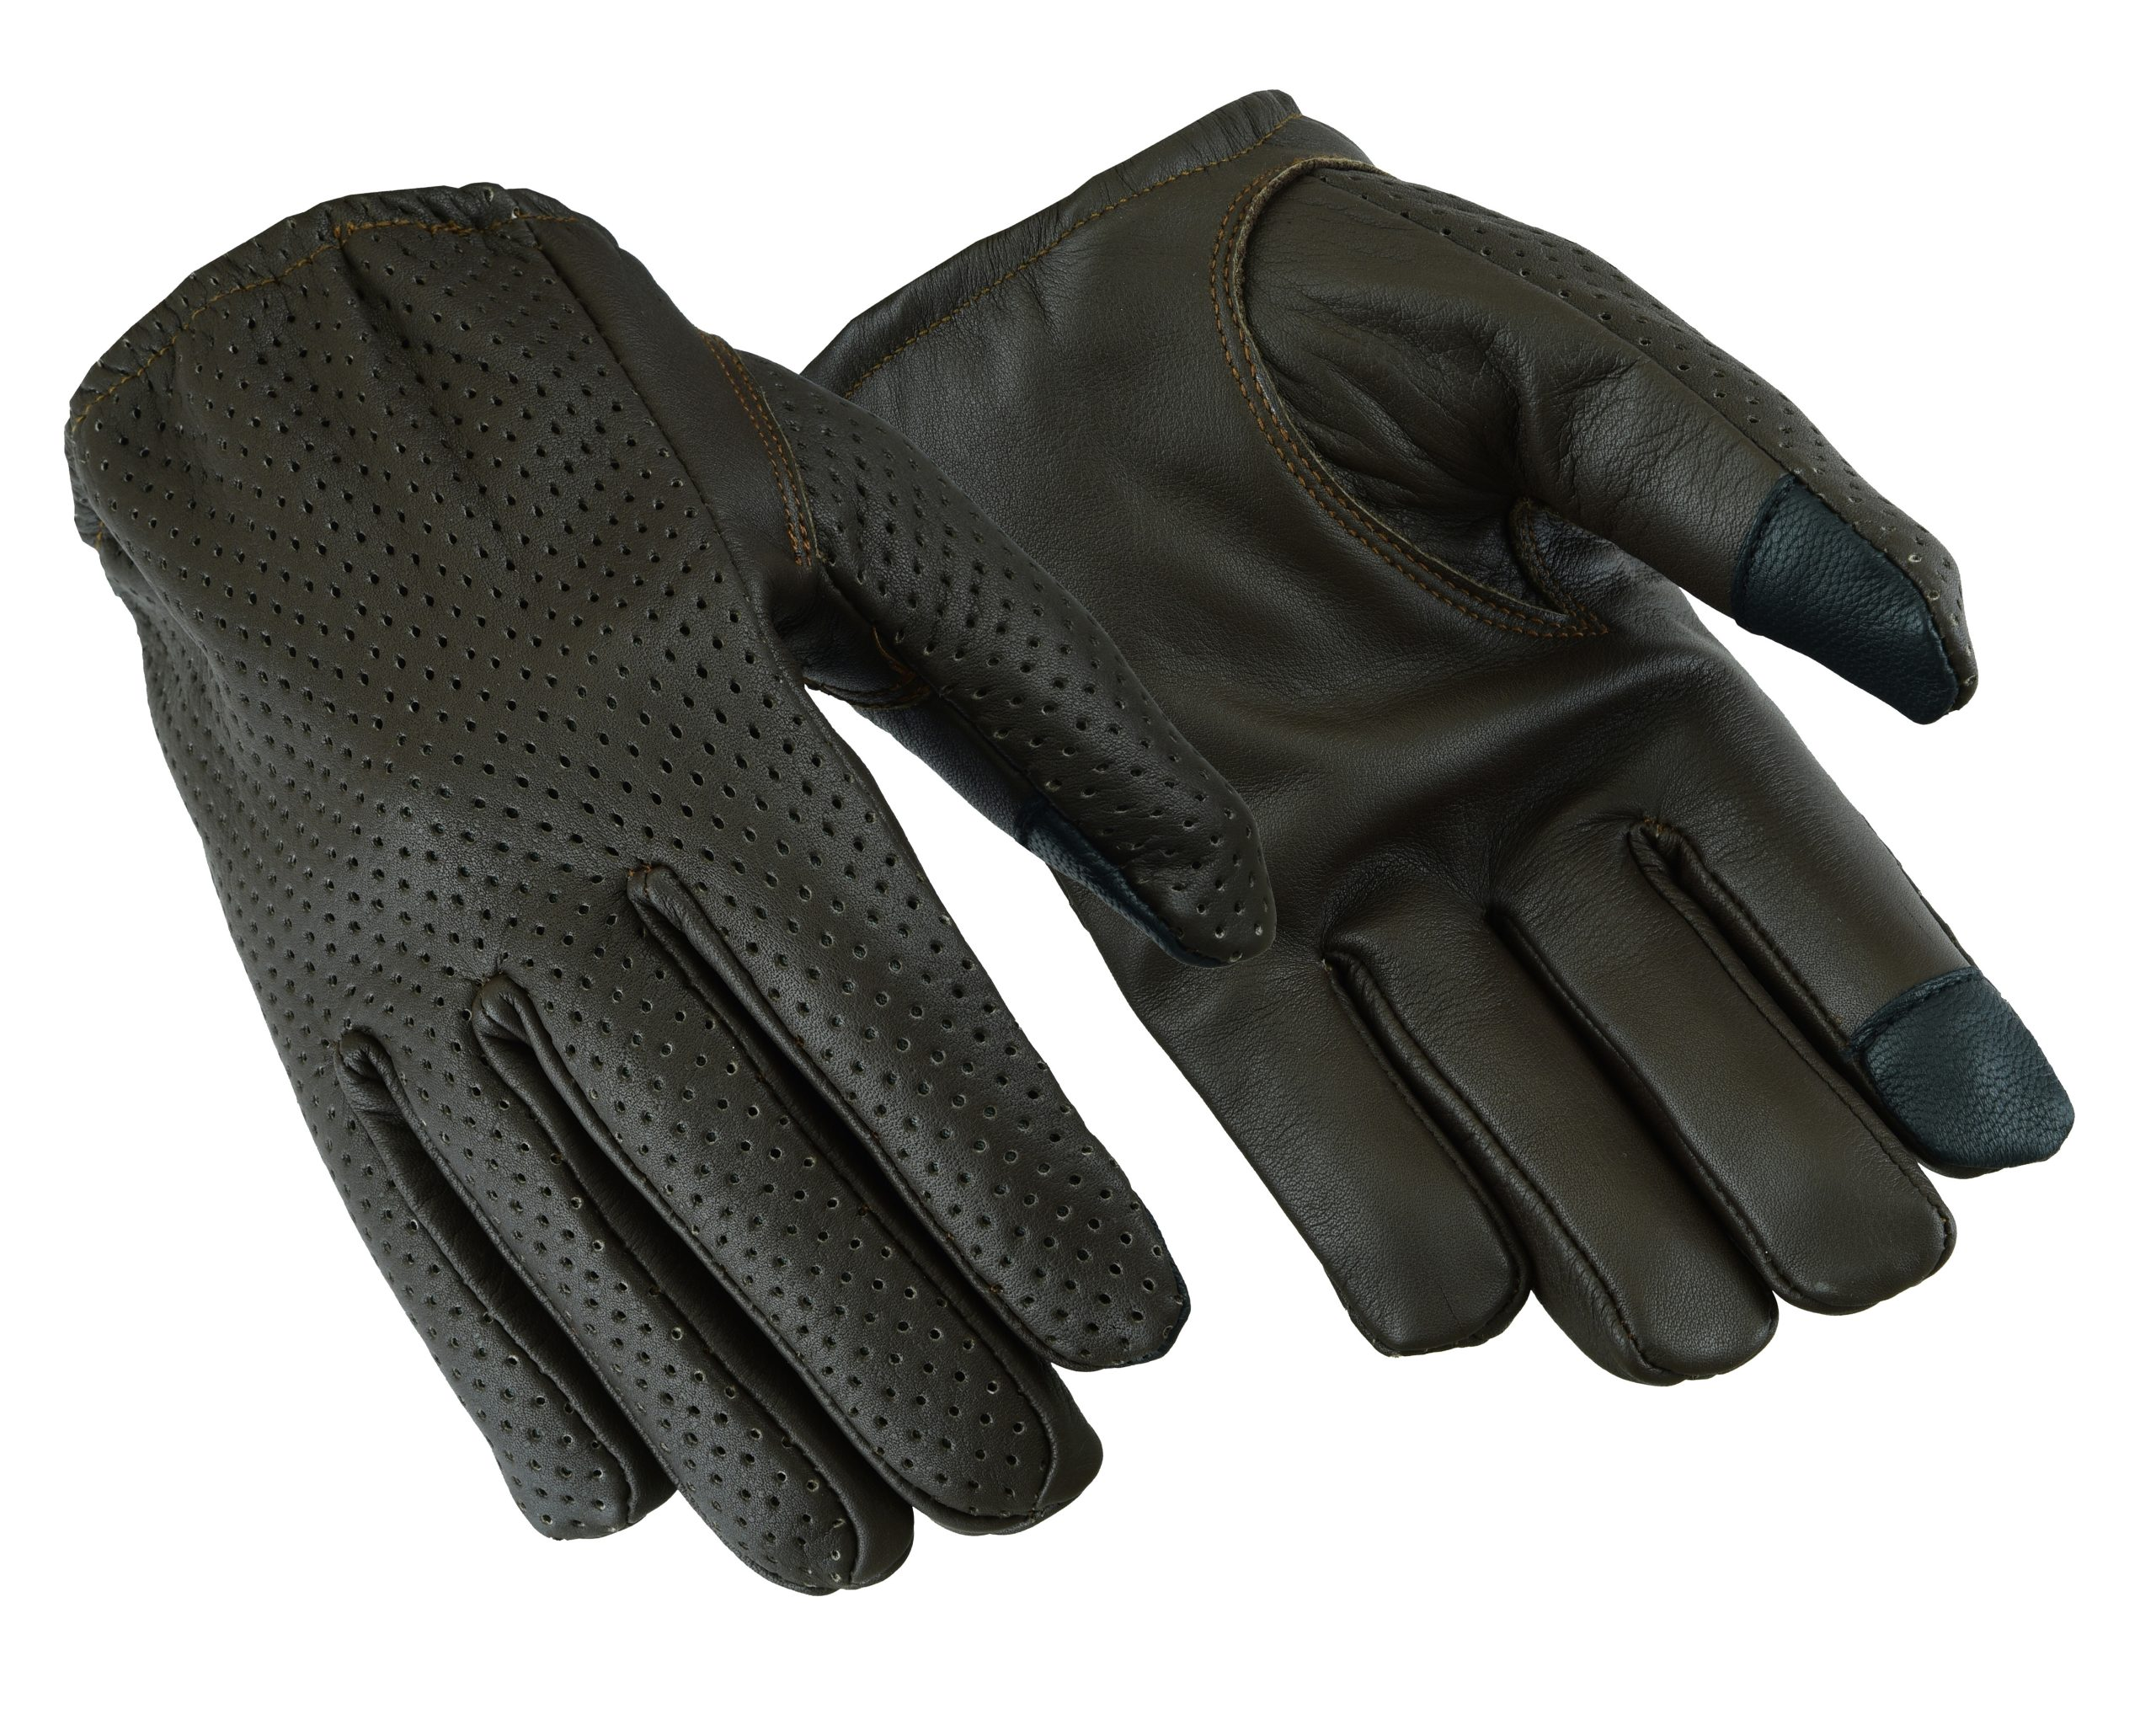 New Men/'s Police Gloves,Real Leather Brown//Black Driving Gloves Size:S//M//L//XL